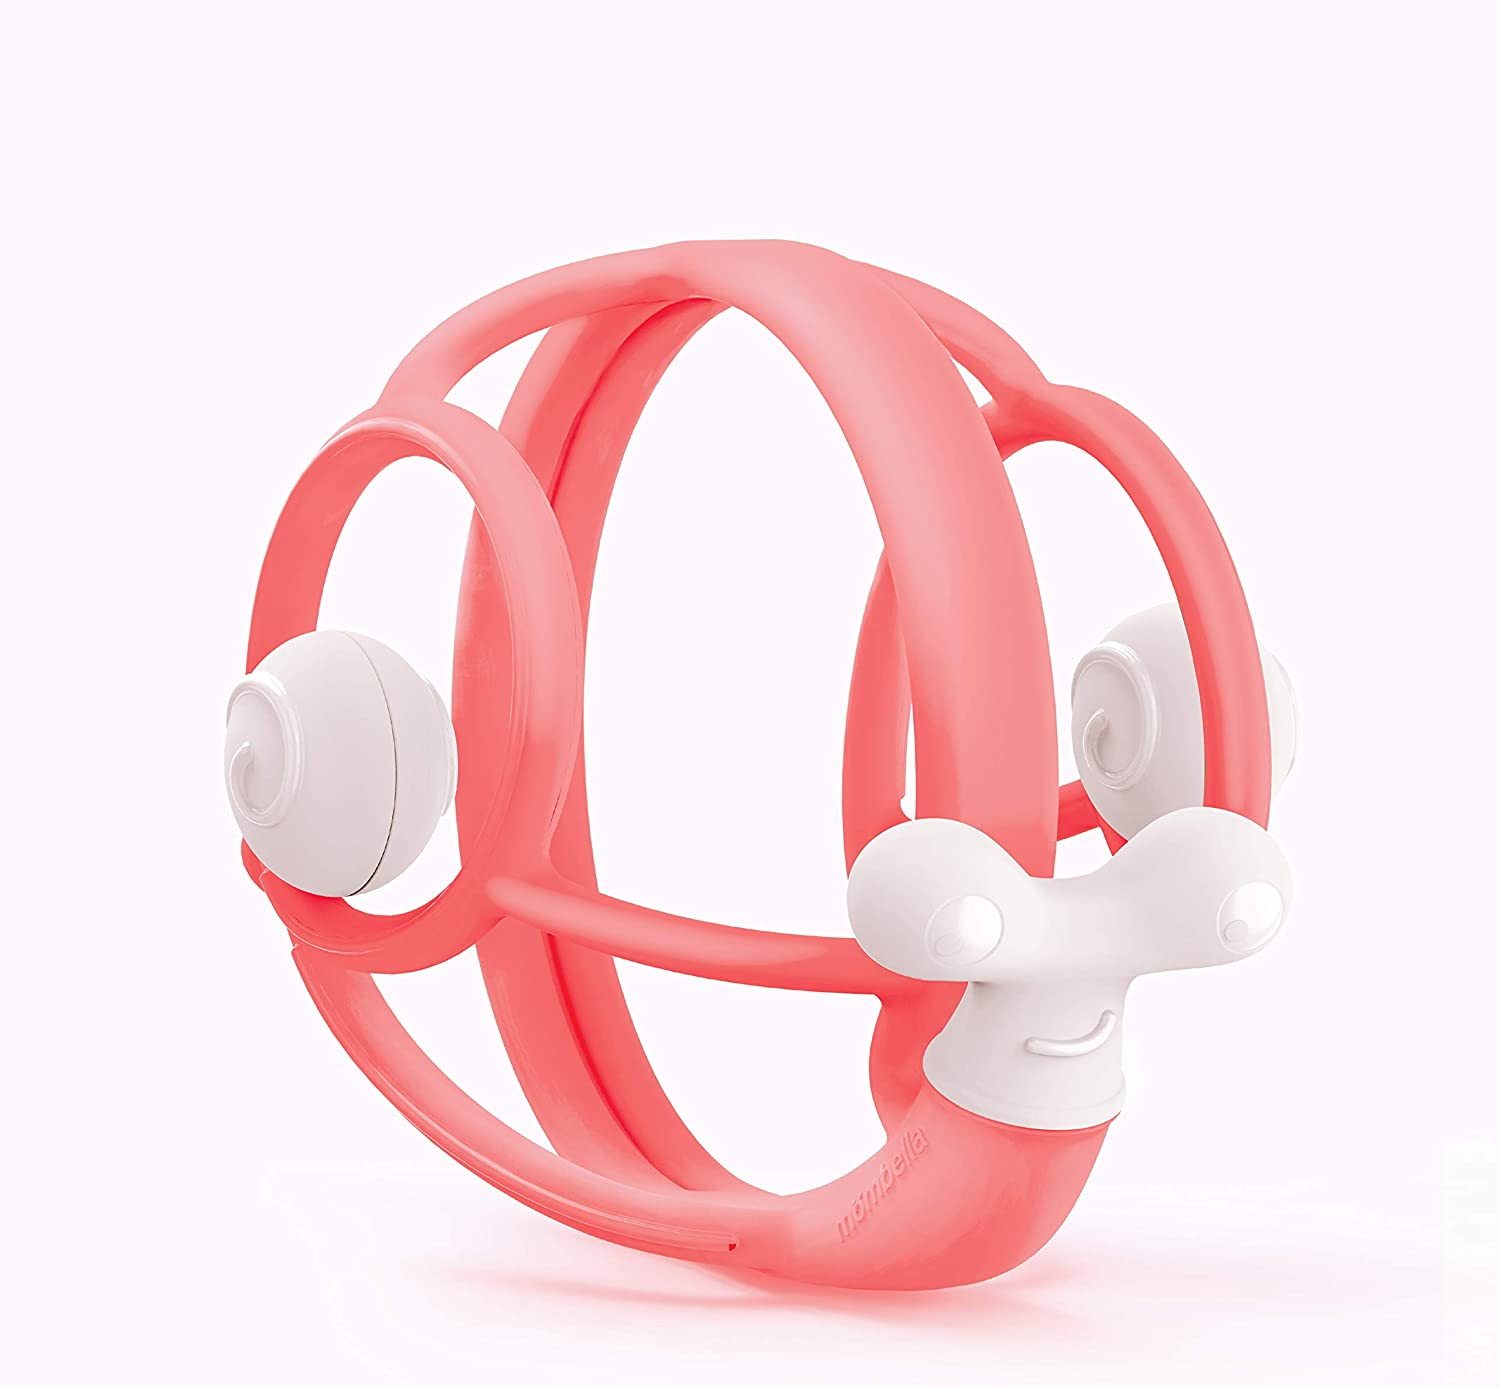 Mombella Pink Silicone Safe Teething Rattle for 3m+ Good for Baby Hands to Clutch and Learn Hand-Brain co-Operation